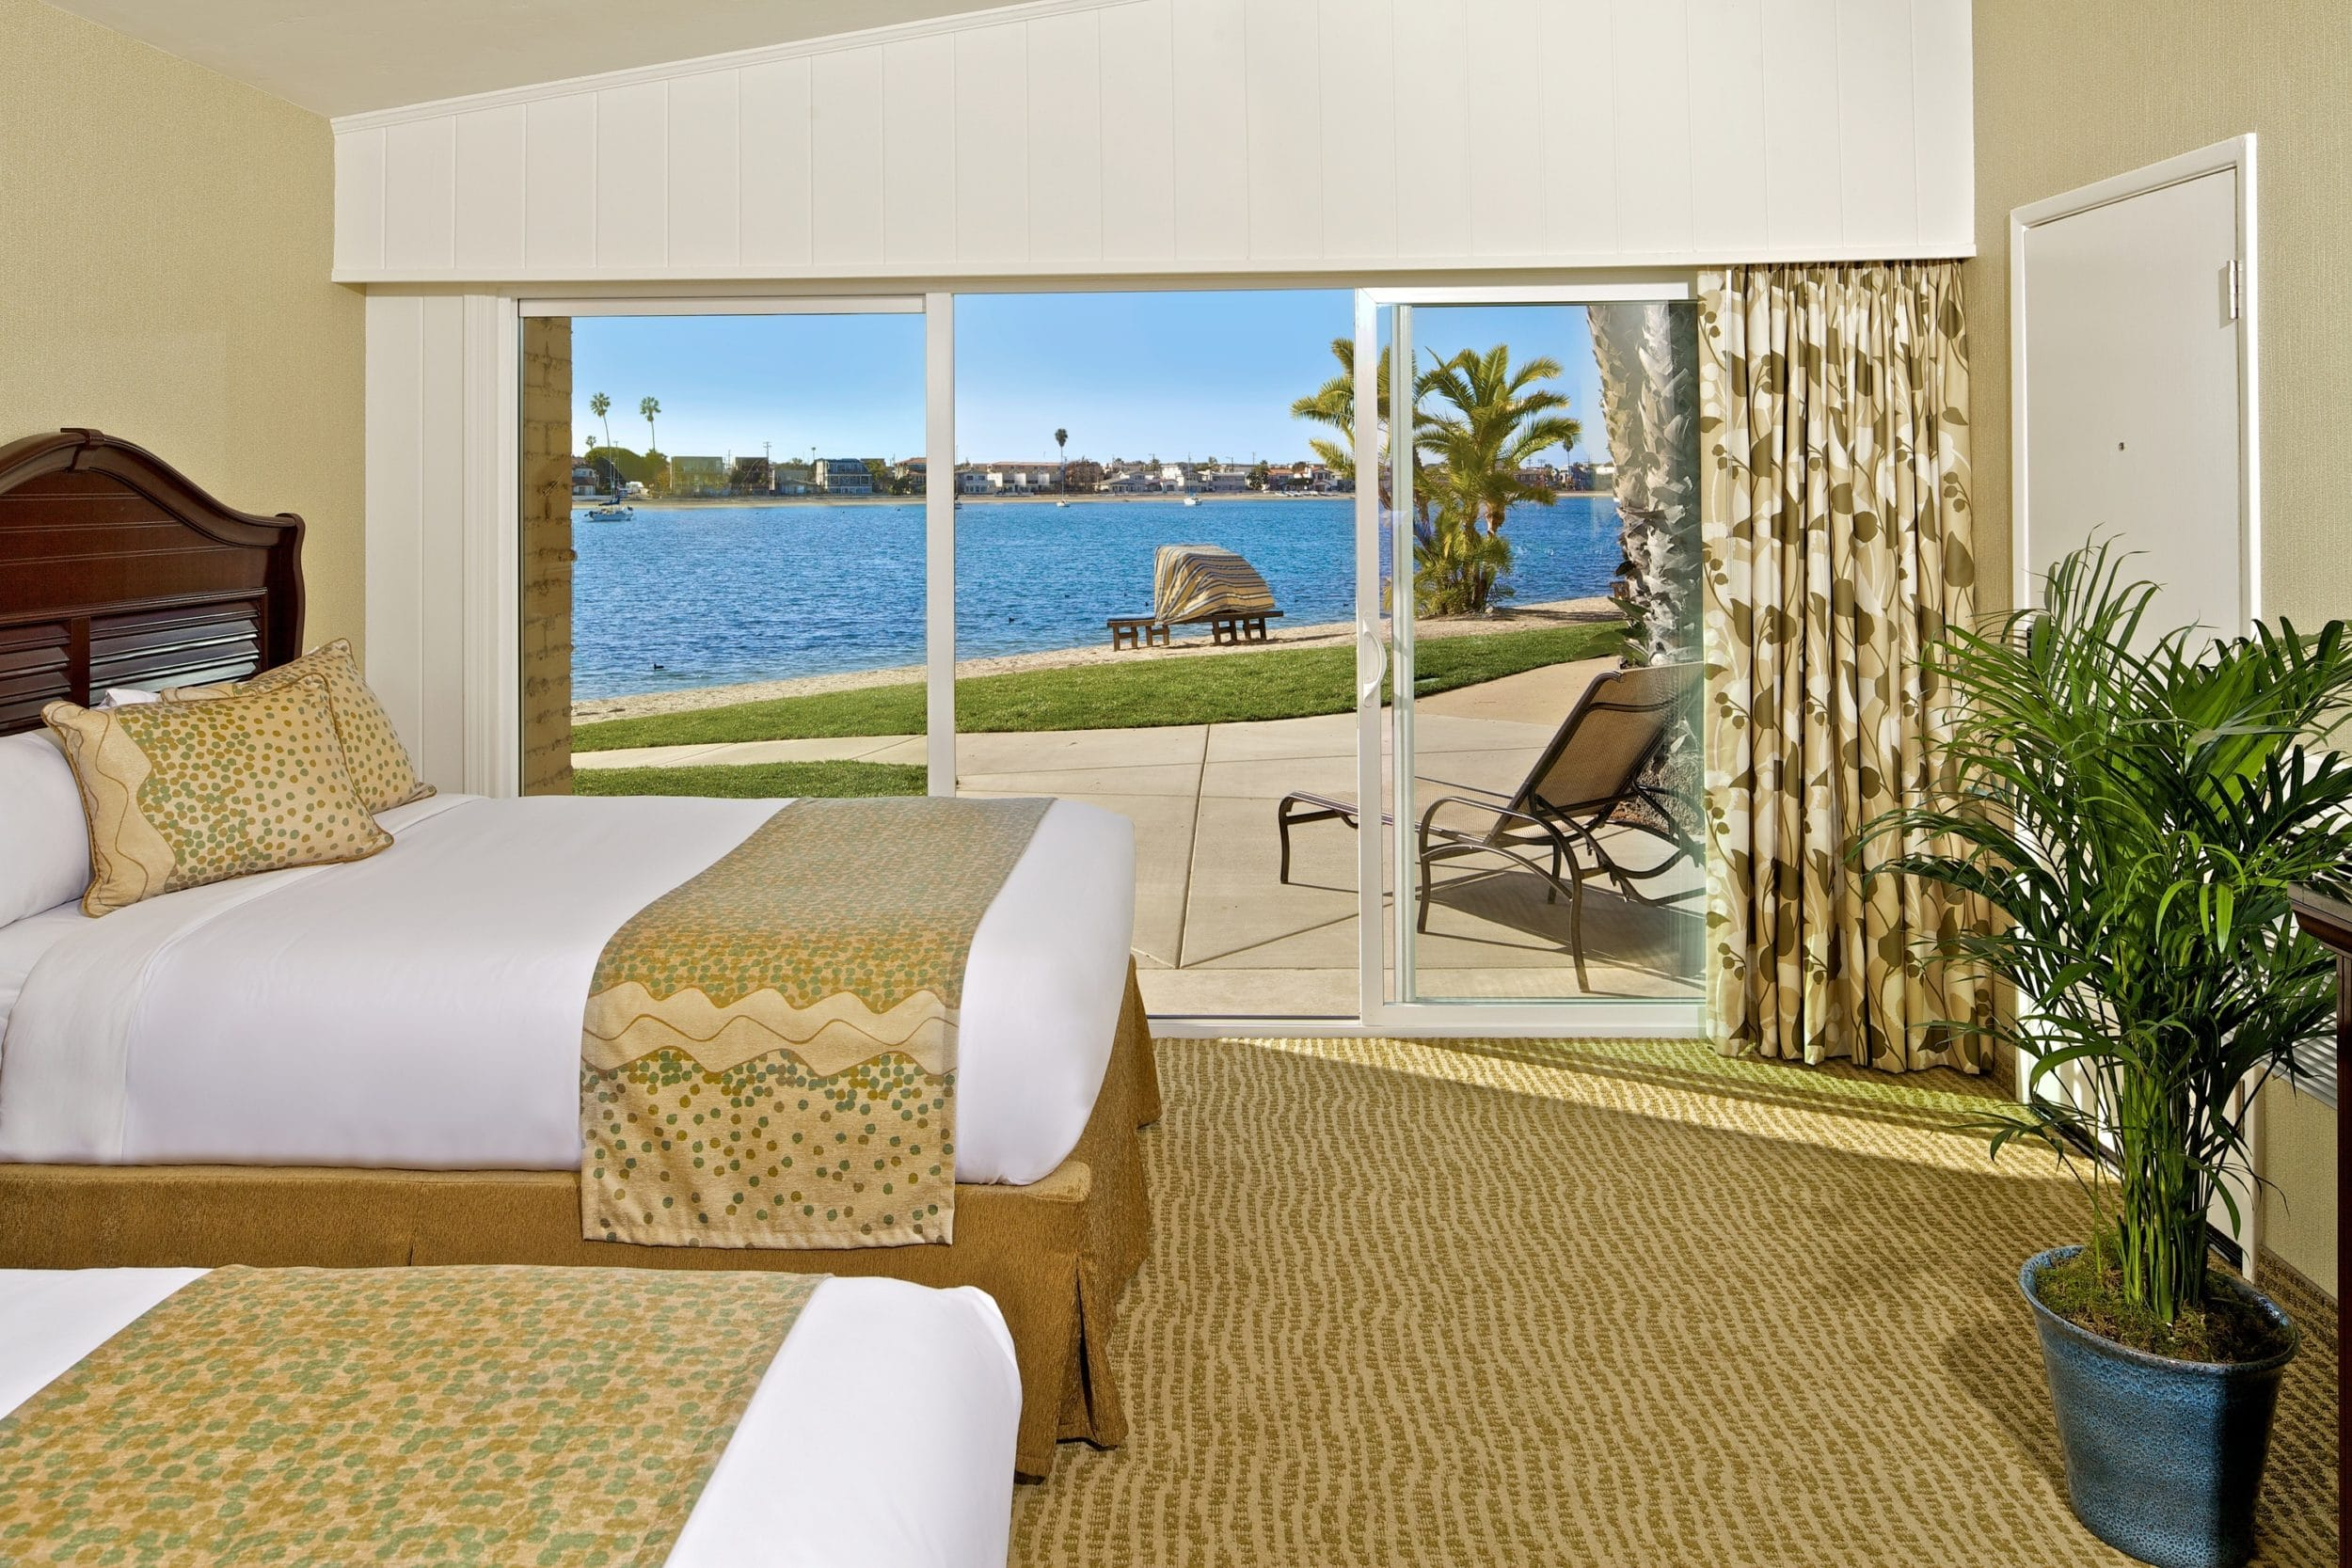 A room with a bay view at Bahia Resort Hotel.